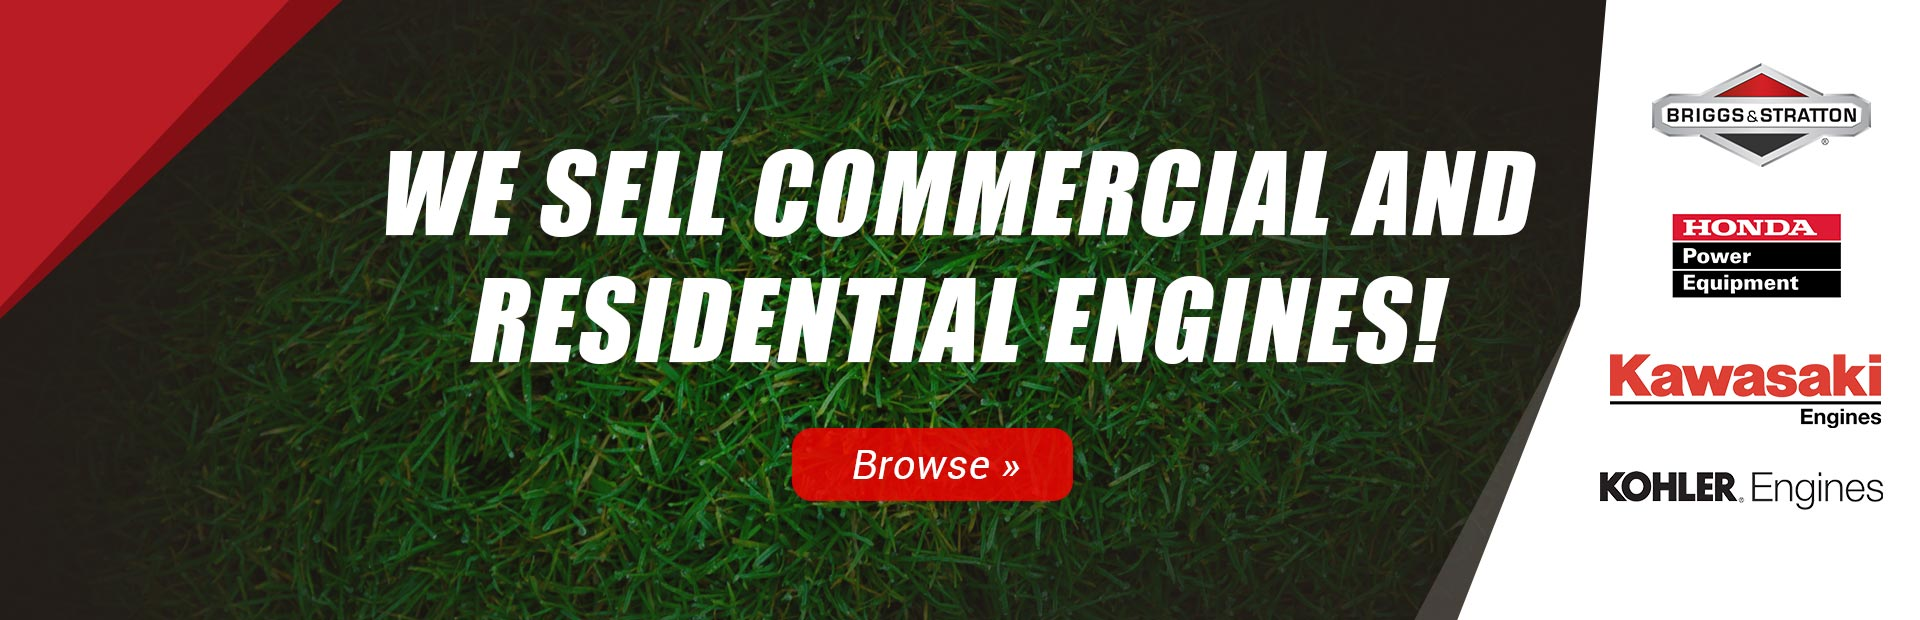 Commercial and Residential Engines